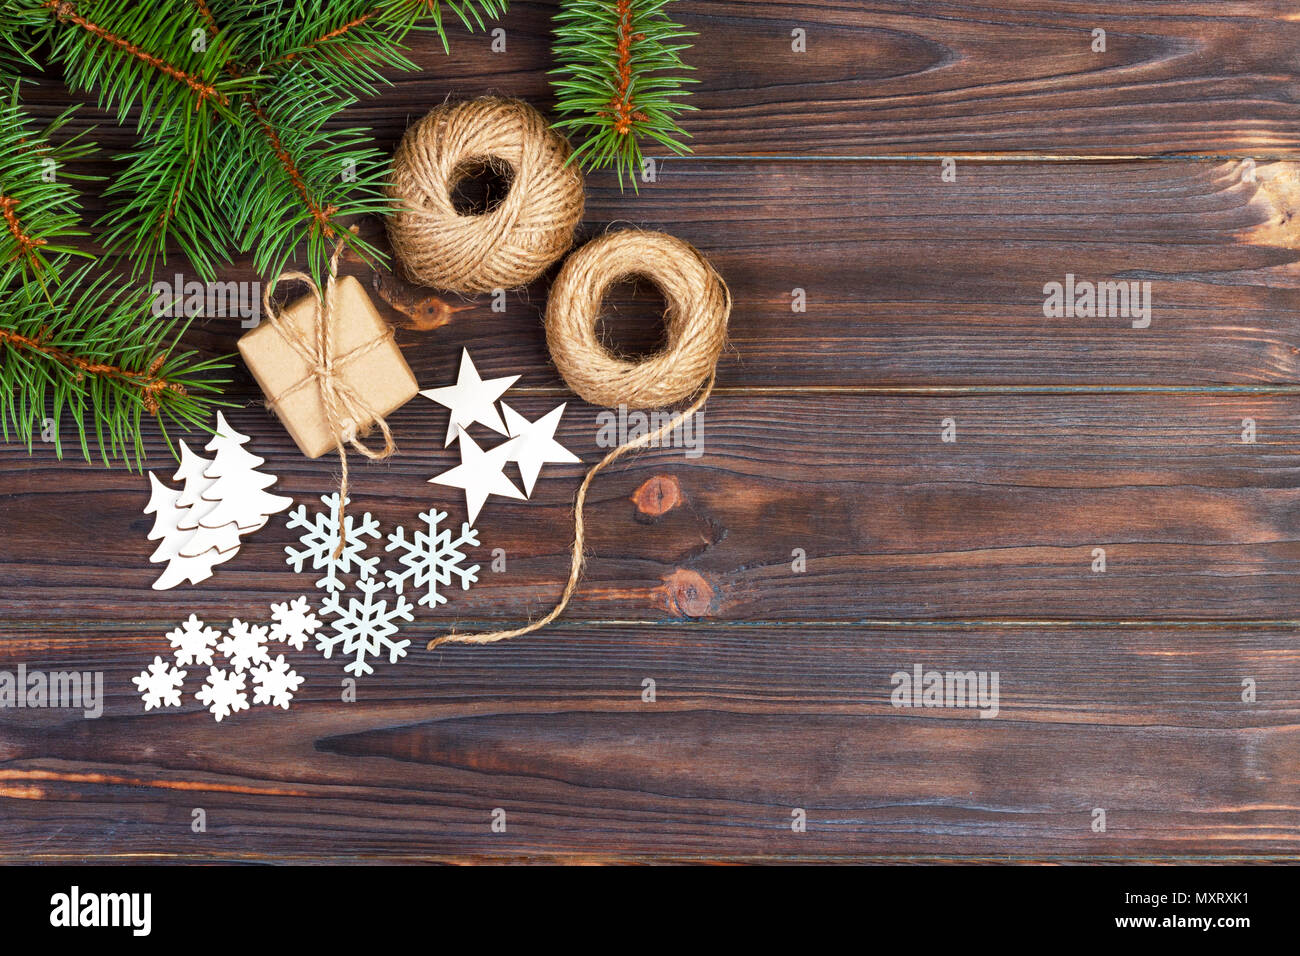 Wood craft rustic christmas background stock photos wood craft